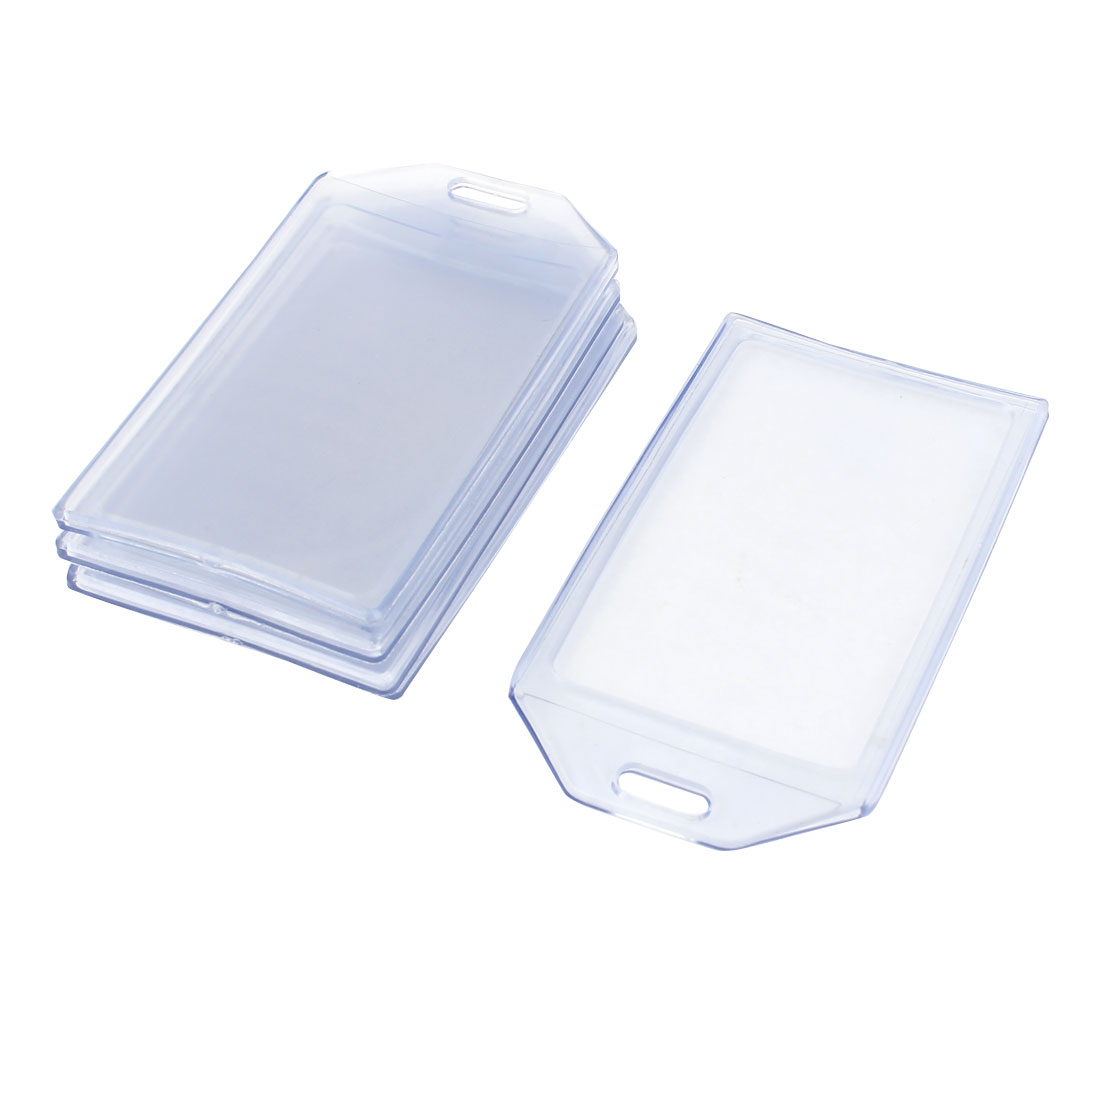 Vertical Clear Blue Plastic ID Card Name Tag Business Badge Holders Case 5pcs